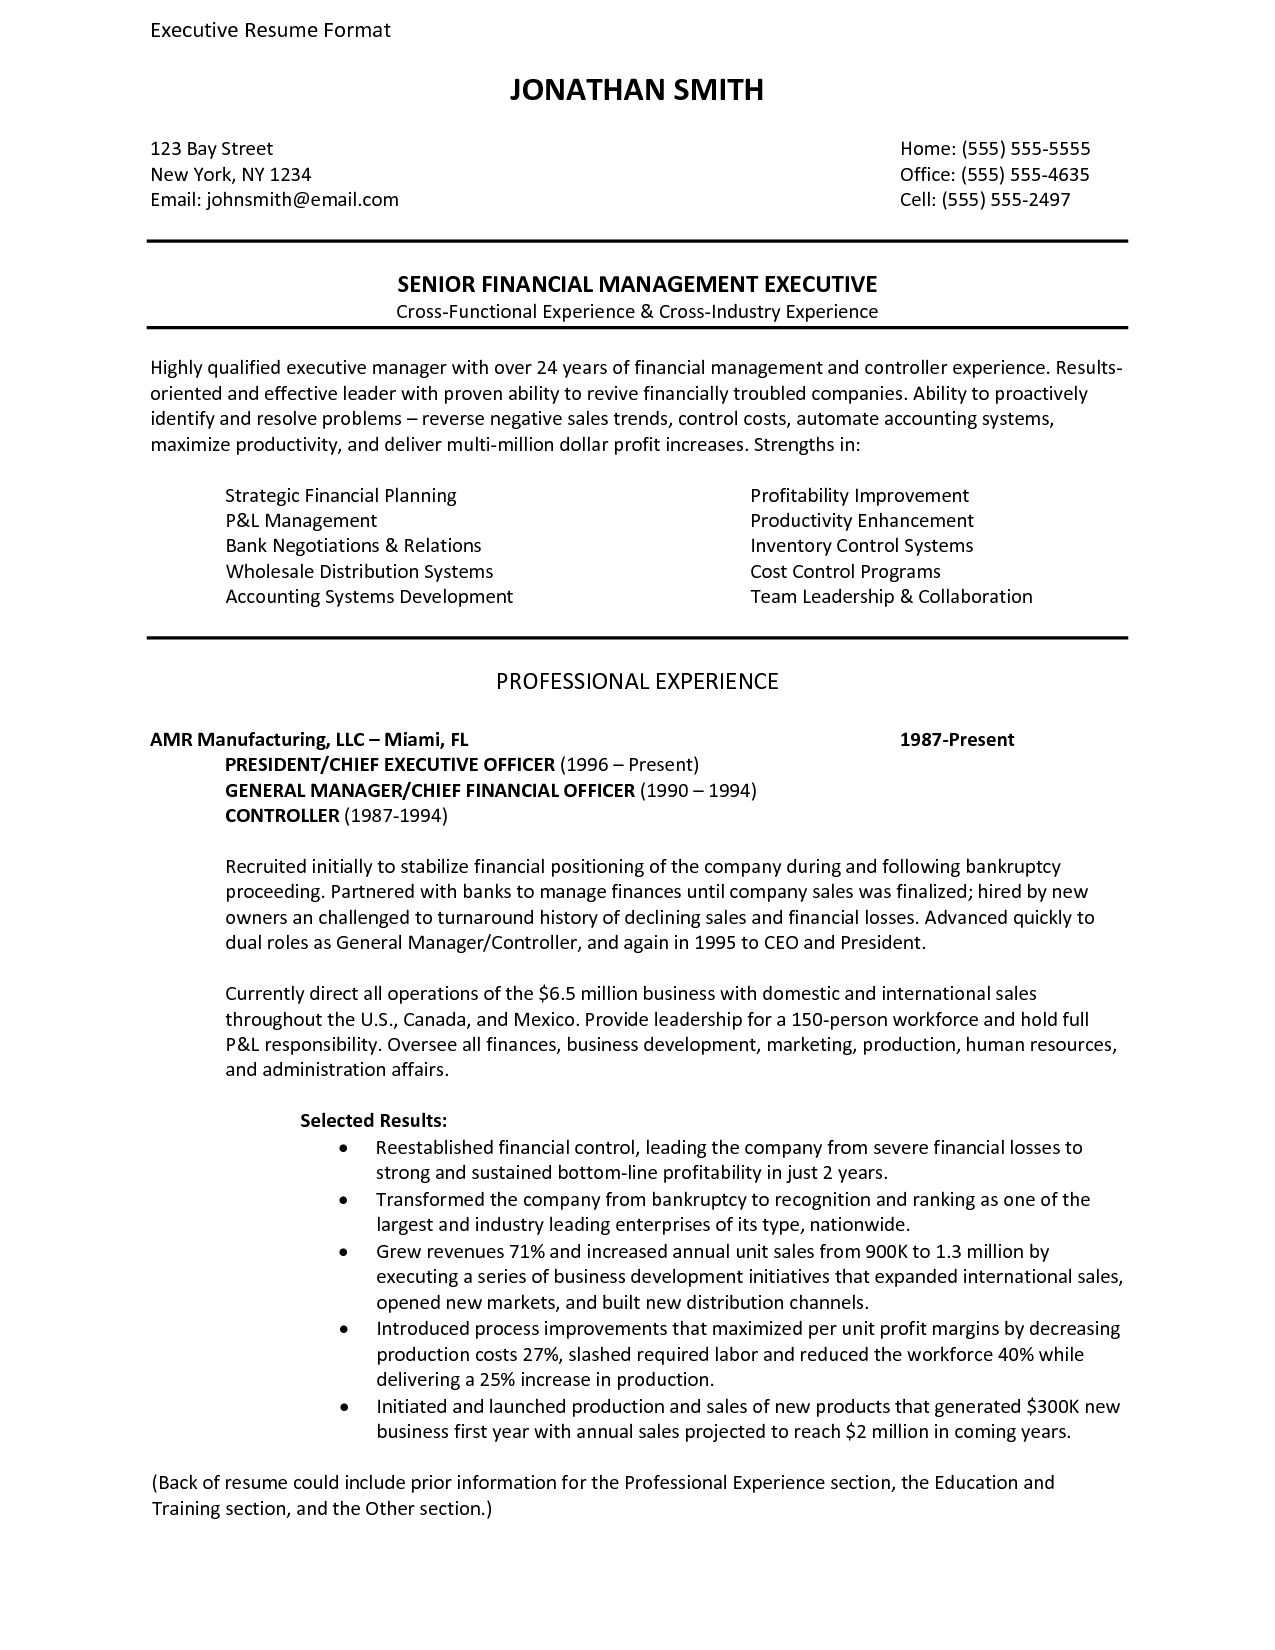 fmcg format sample executive resume cover letter - Fmcg Resume Sample